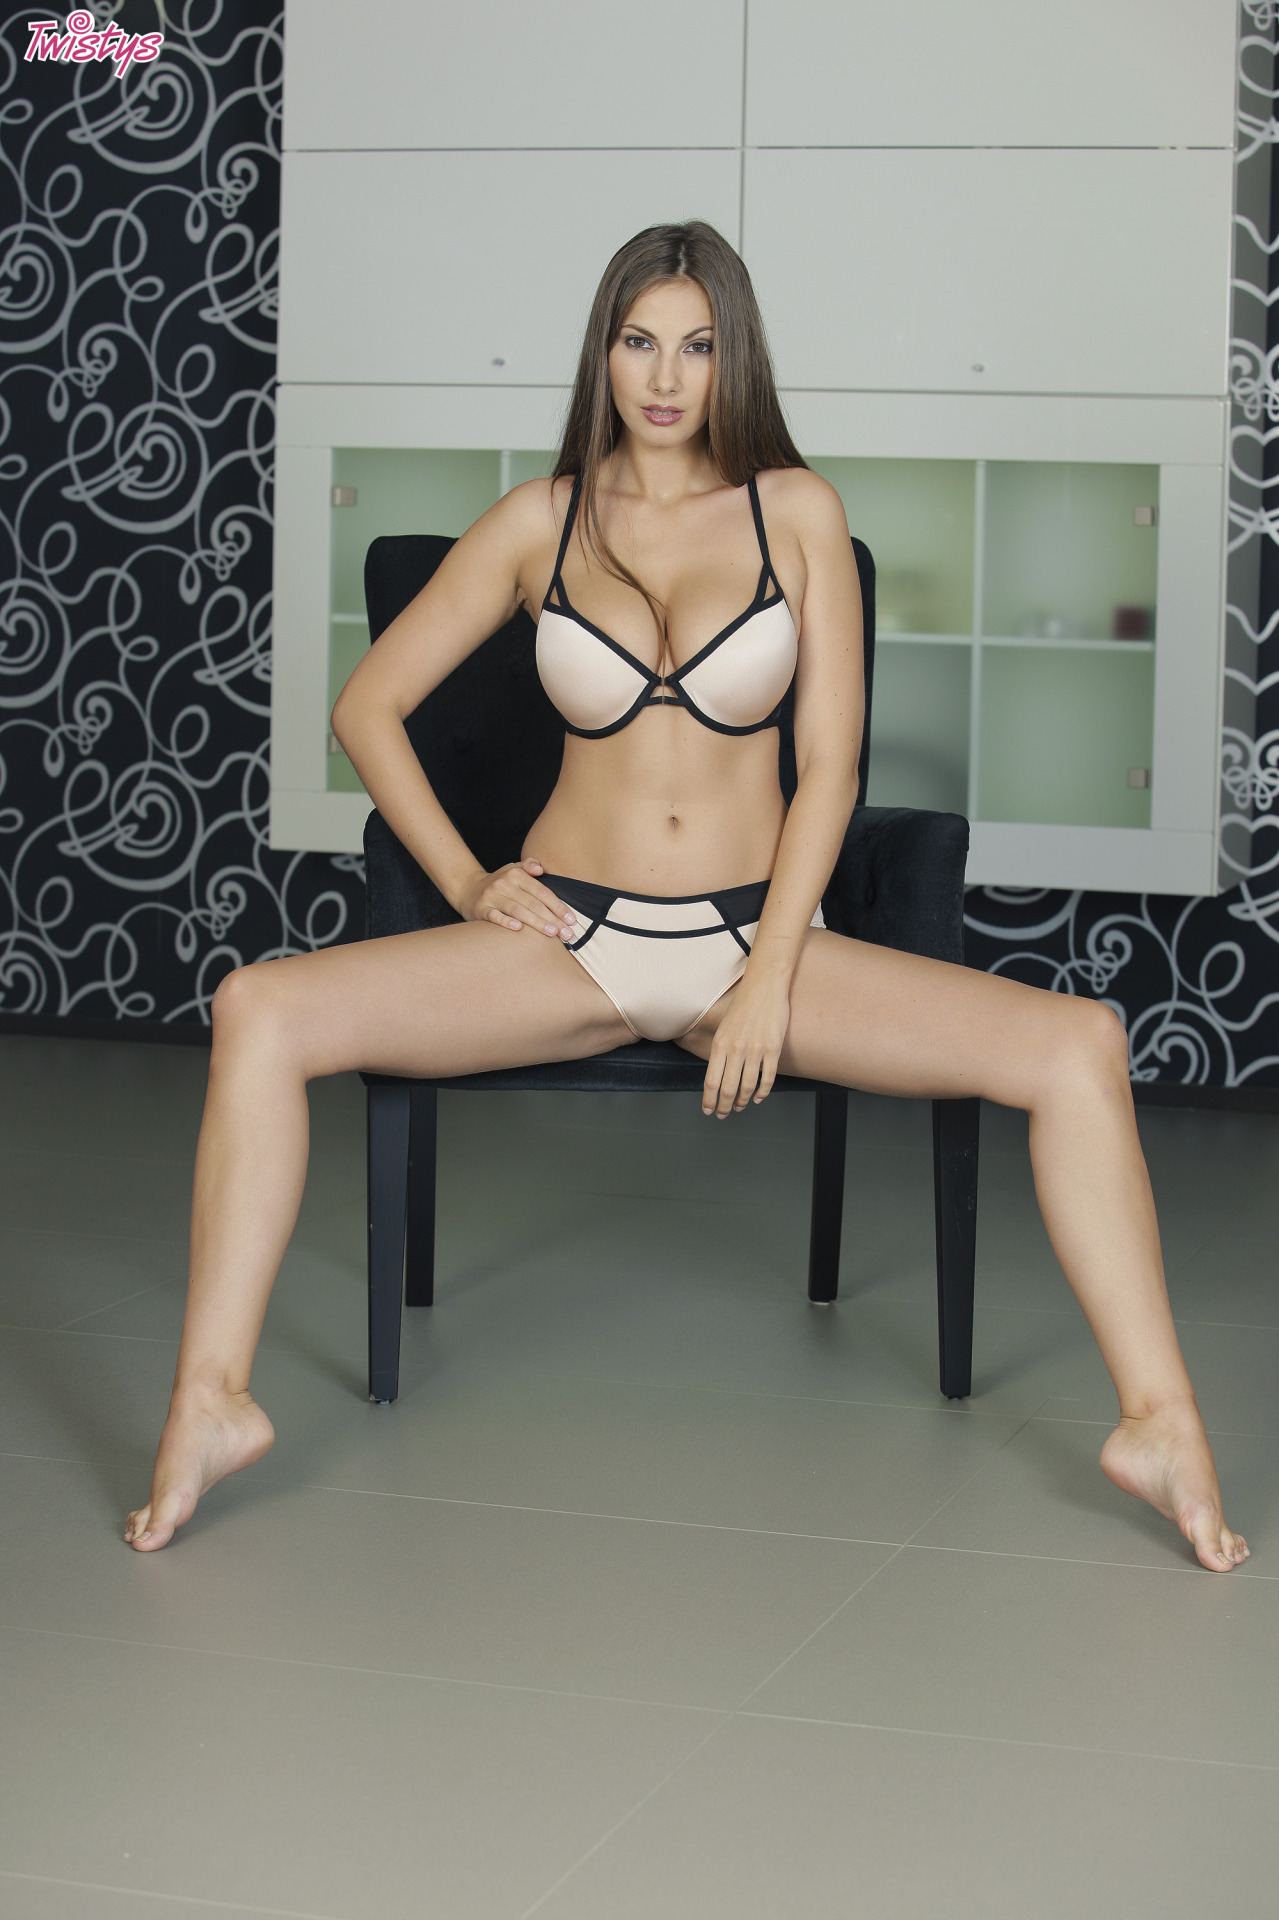 Connie Carter / Mary Grey / Conny Lior / Roselyne A / Josephine – Yet More Busty Loveliness Part 1 Of 2 4